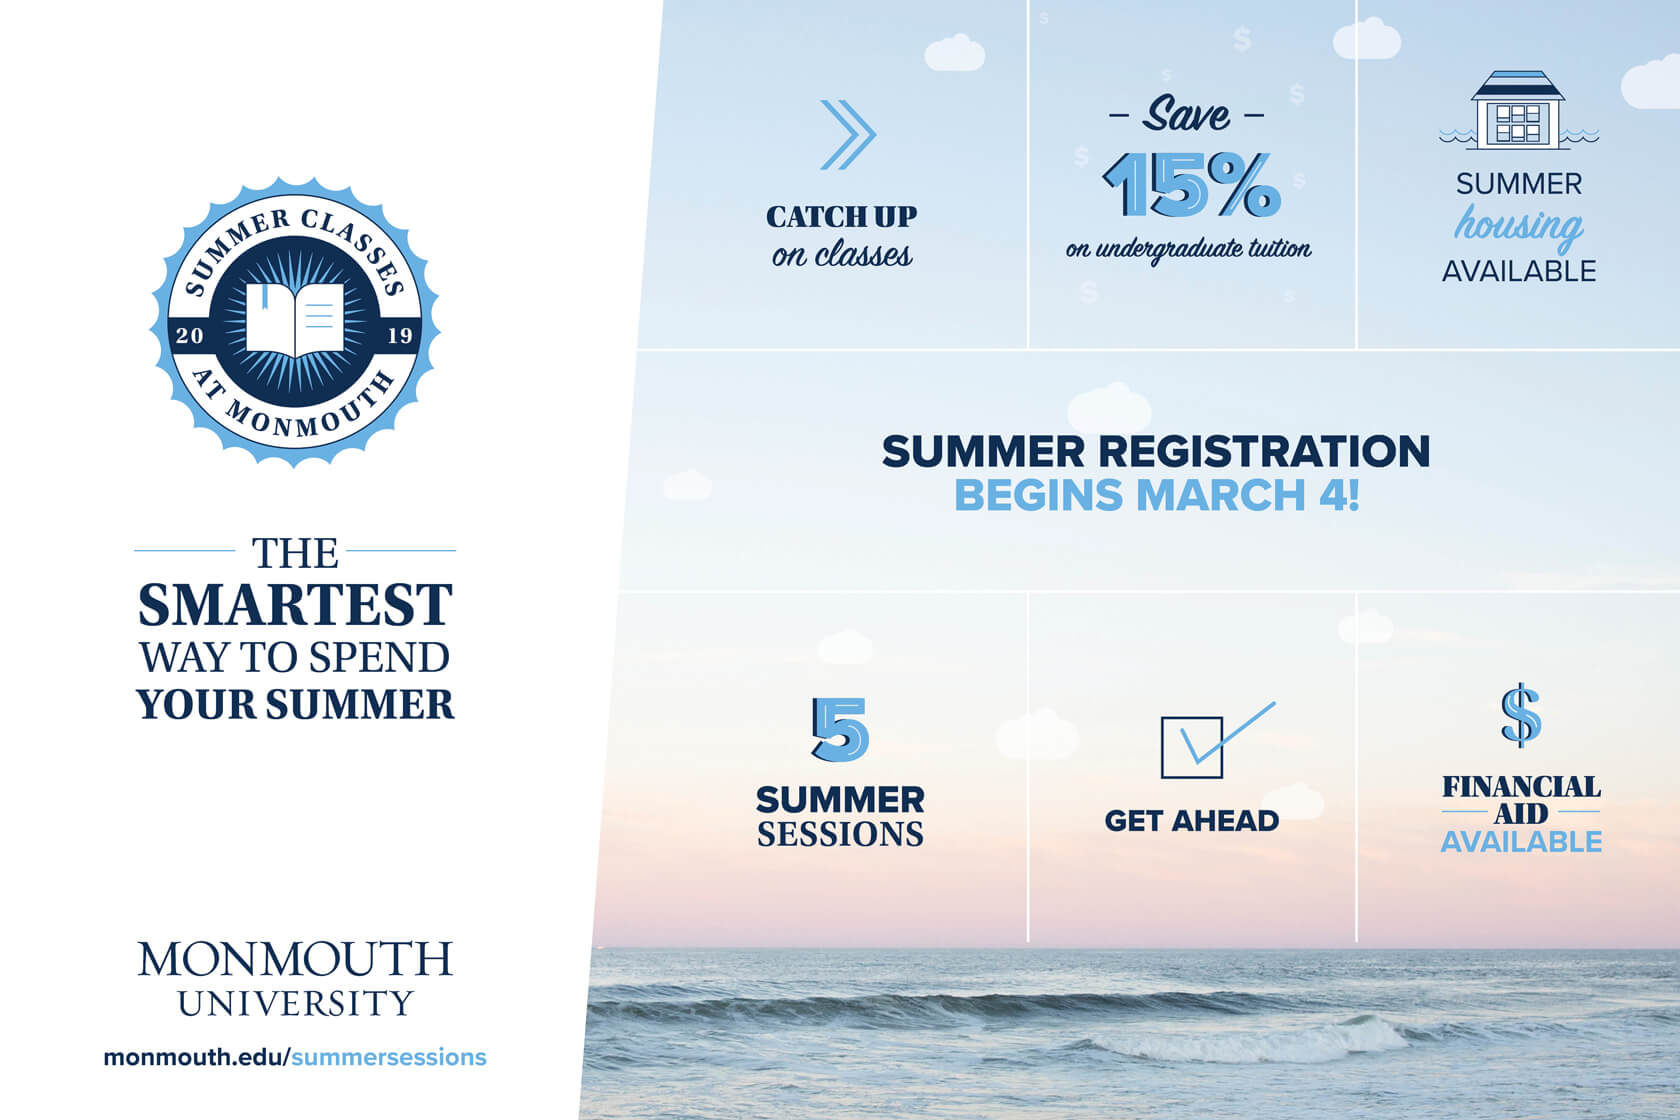 Summer Registration Begins March 4